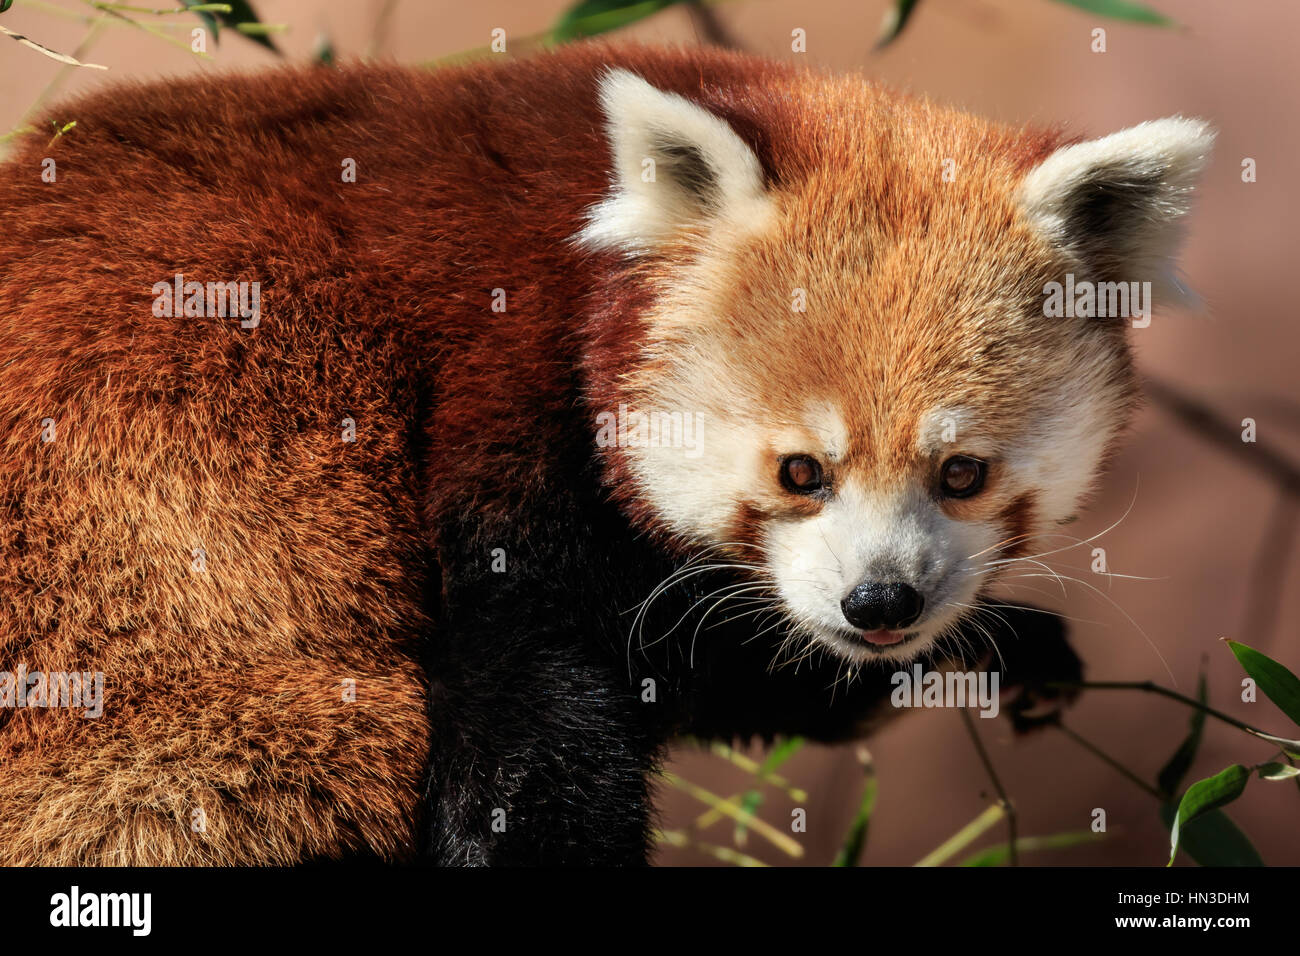 Red Pandas can be counted on for cute. This one is from the Oklahoma City Zoo. - Stock Image